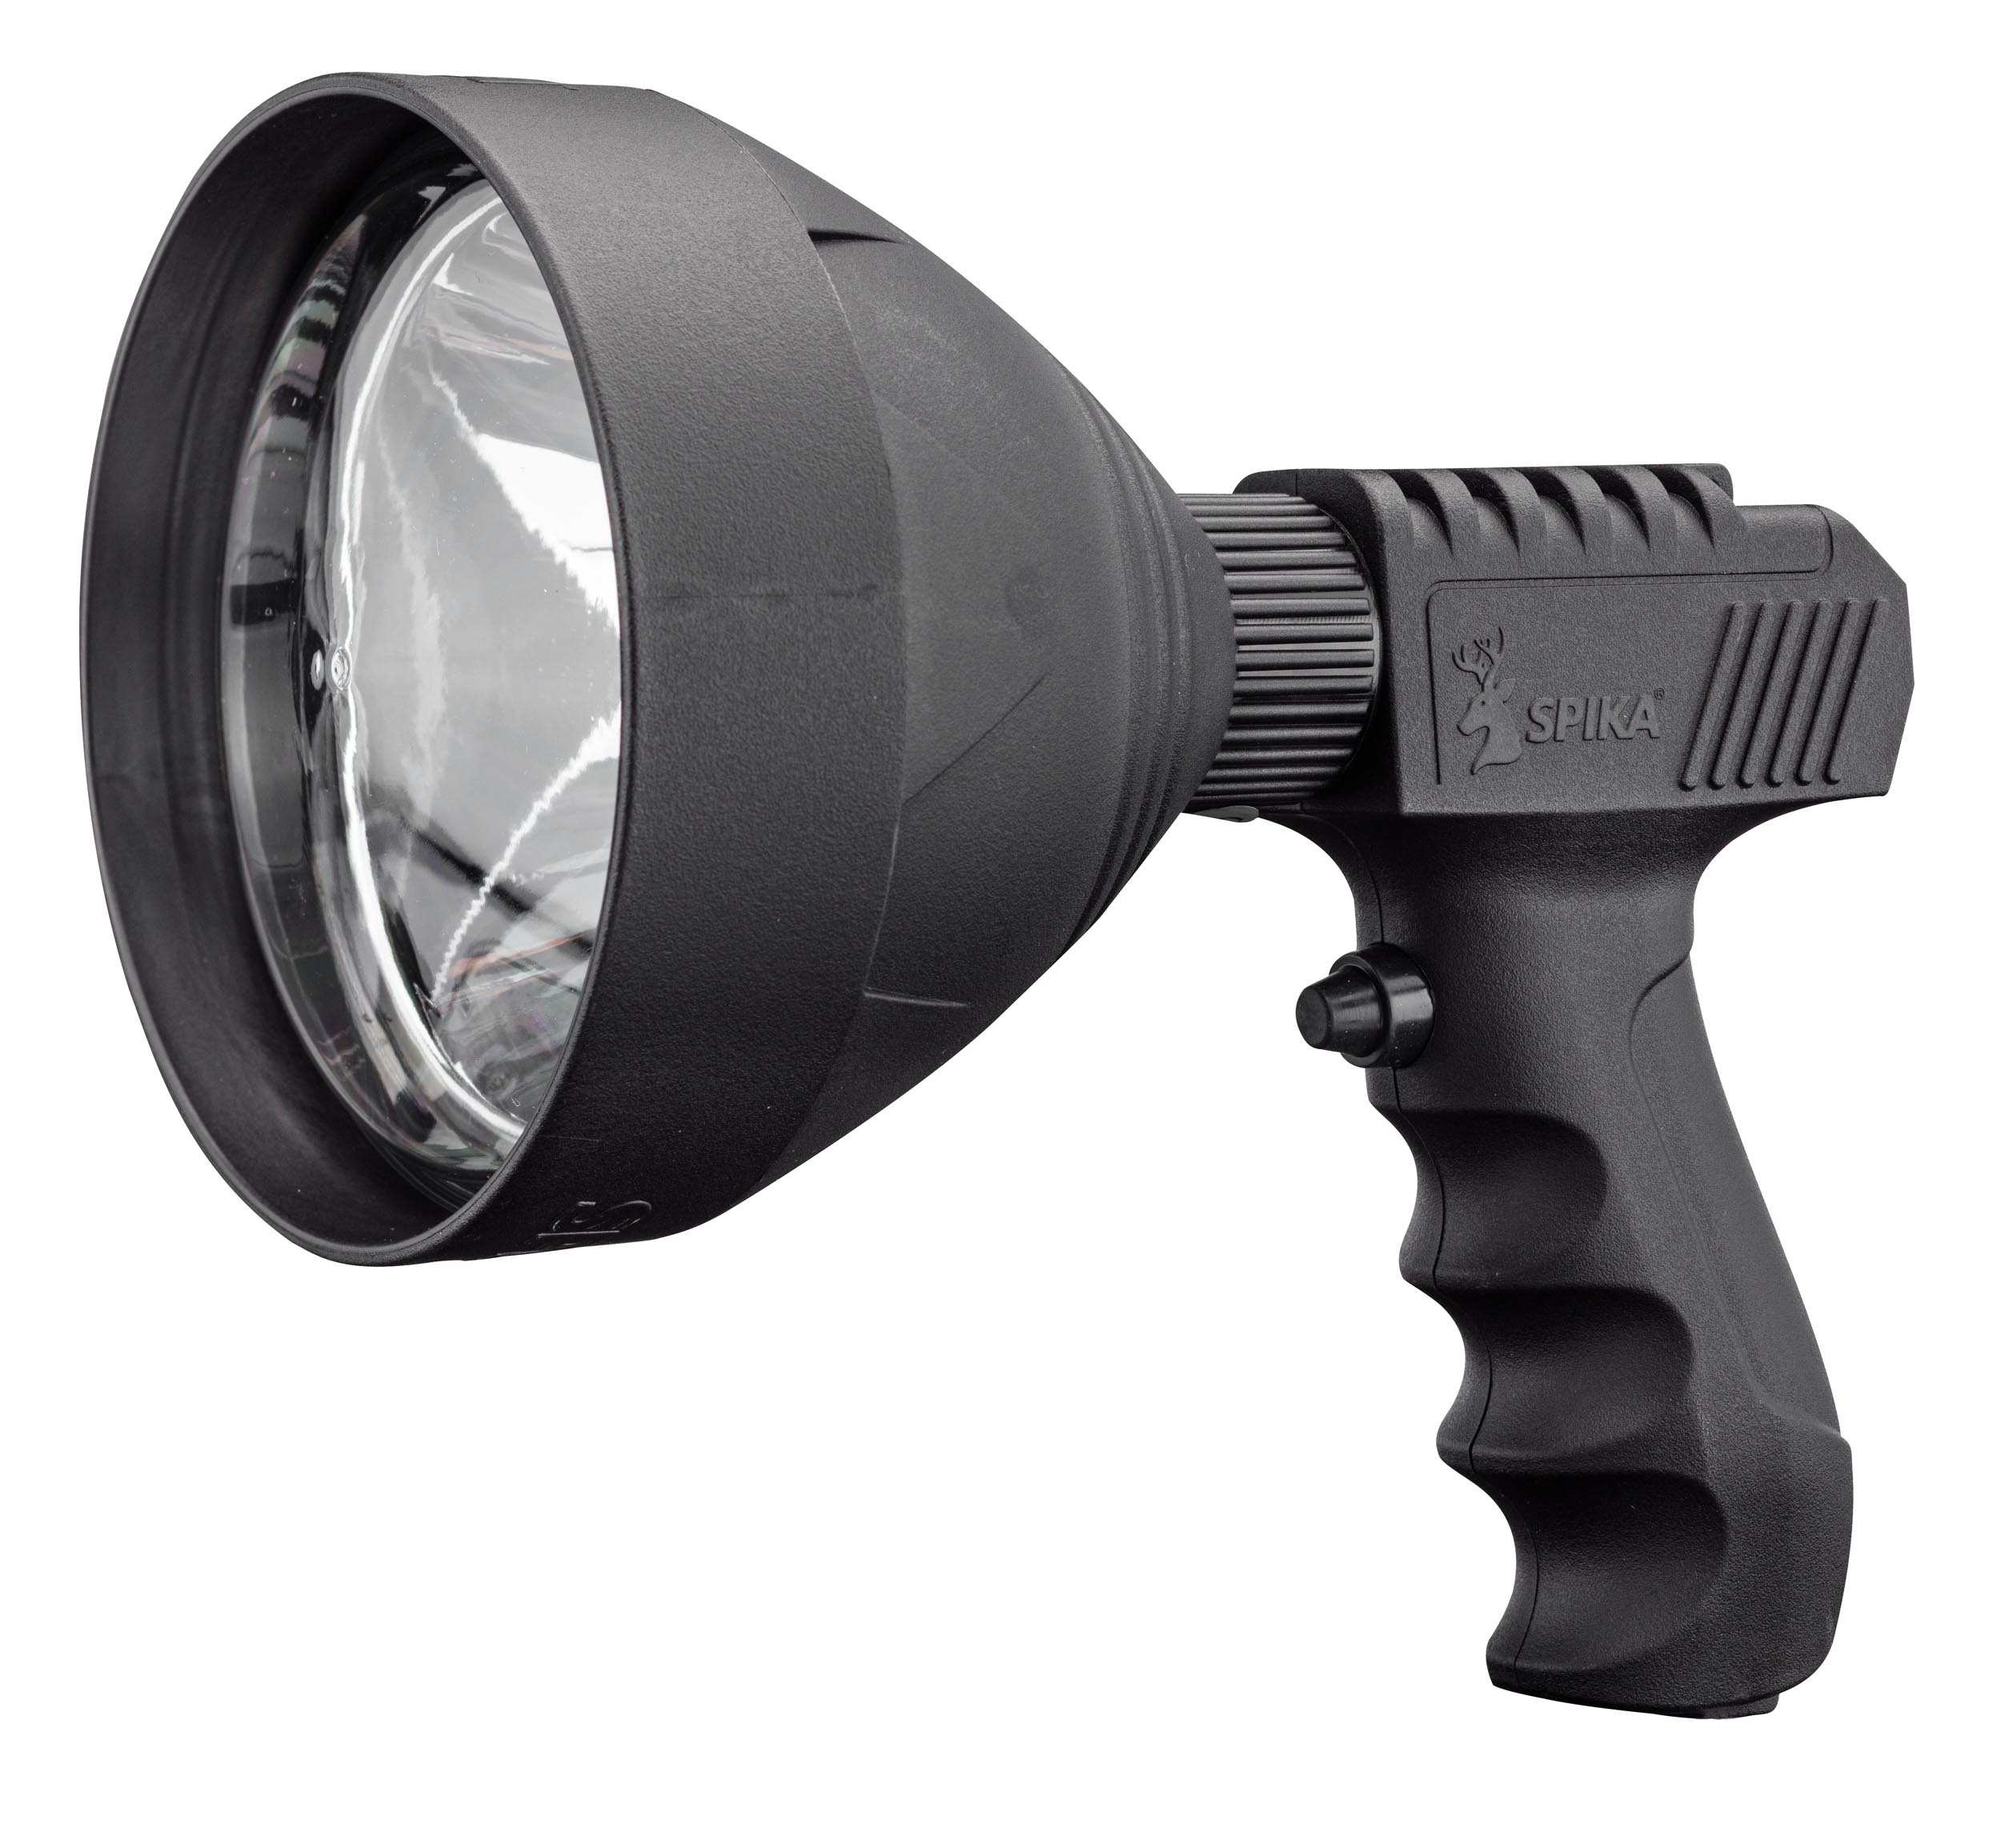 LC756-3 Lamp / Spot 1200 lumens 15W rechargeable waterproof - LC756